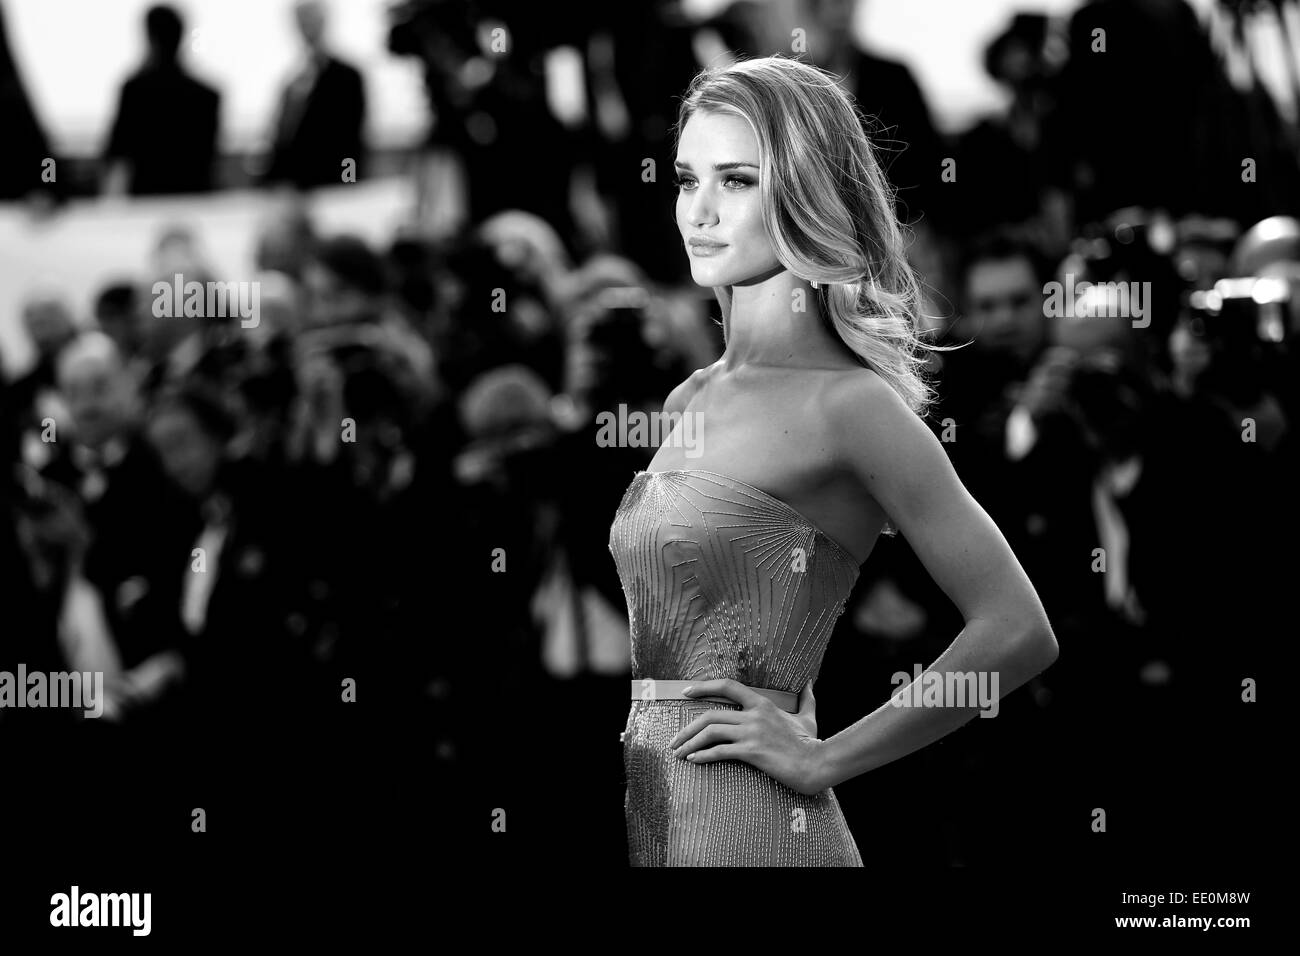 CANNES, FRANCE - MAY 21: Rosie Huntington-Whiteley attends the 'The Search' Premiere during the 67th Cannes - Stock Image